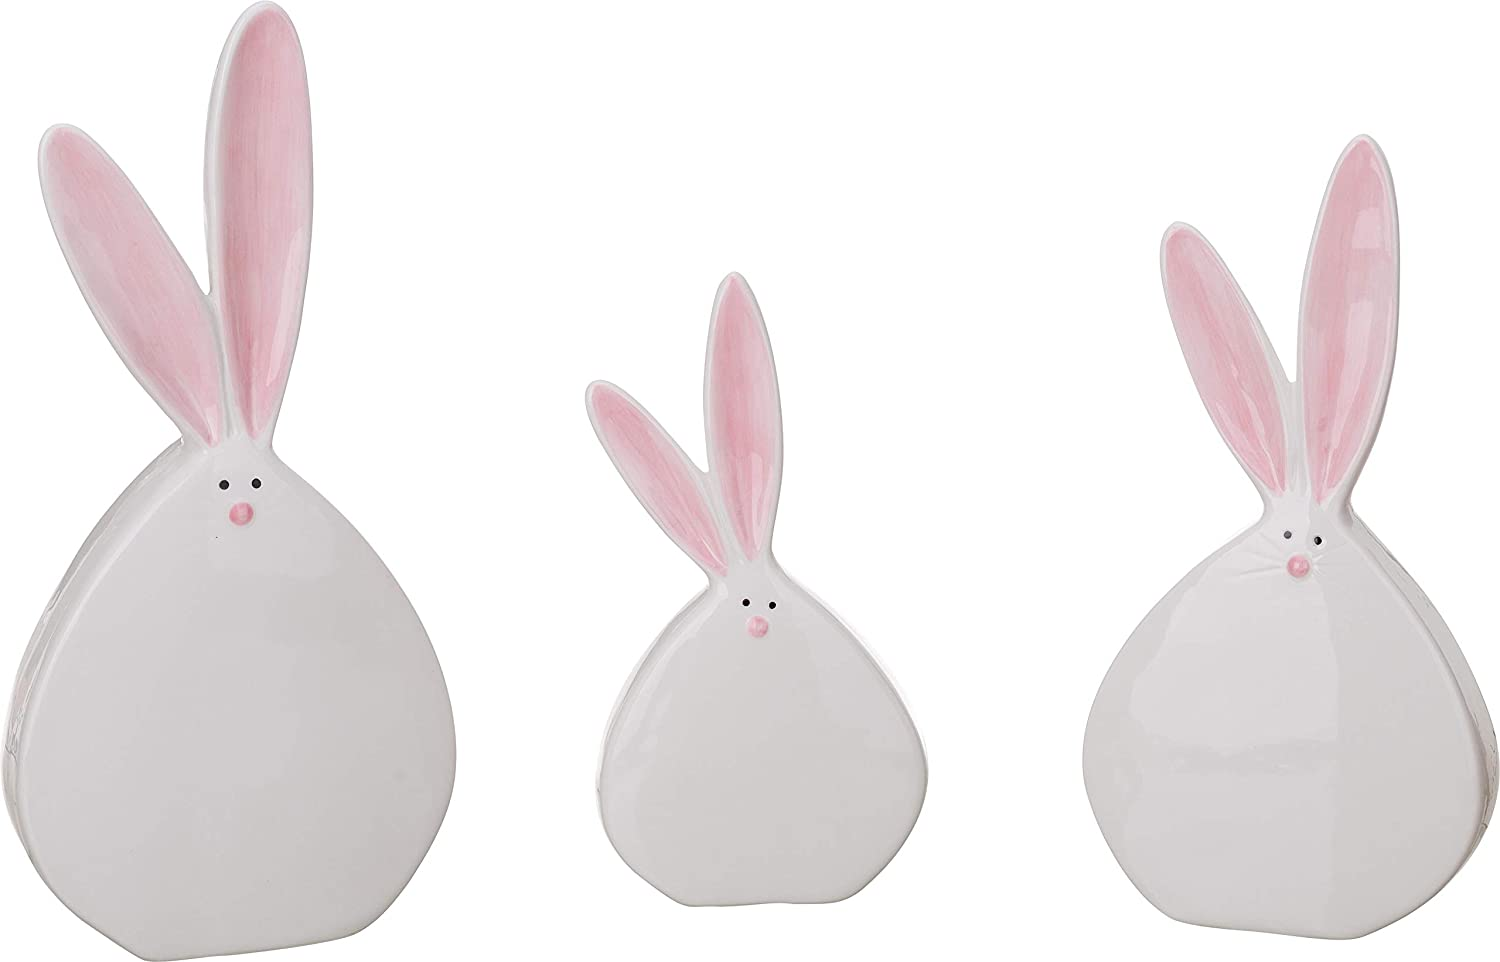 Transpac White Dolomite Easter Fun Chubby Bunny Tabletop Decor Set of 3